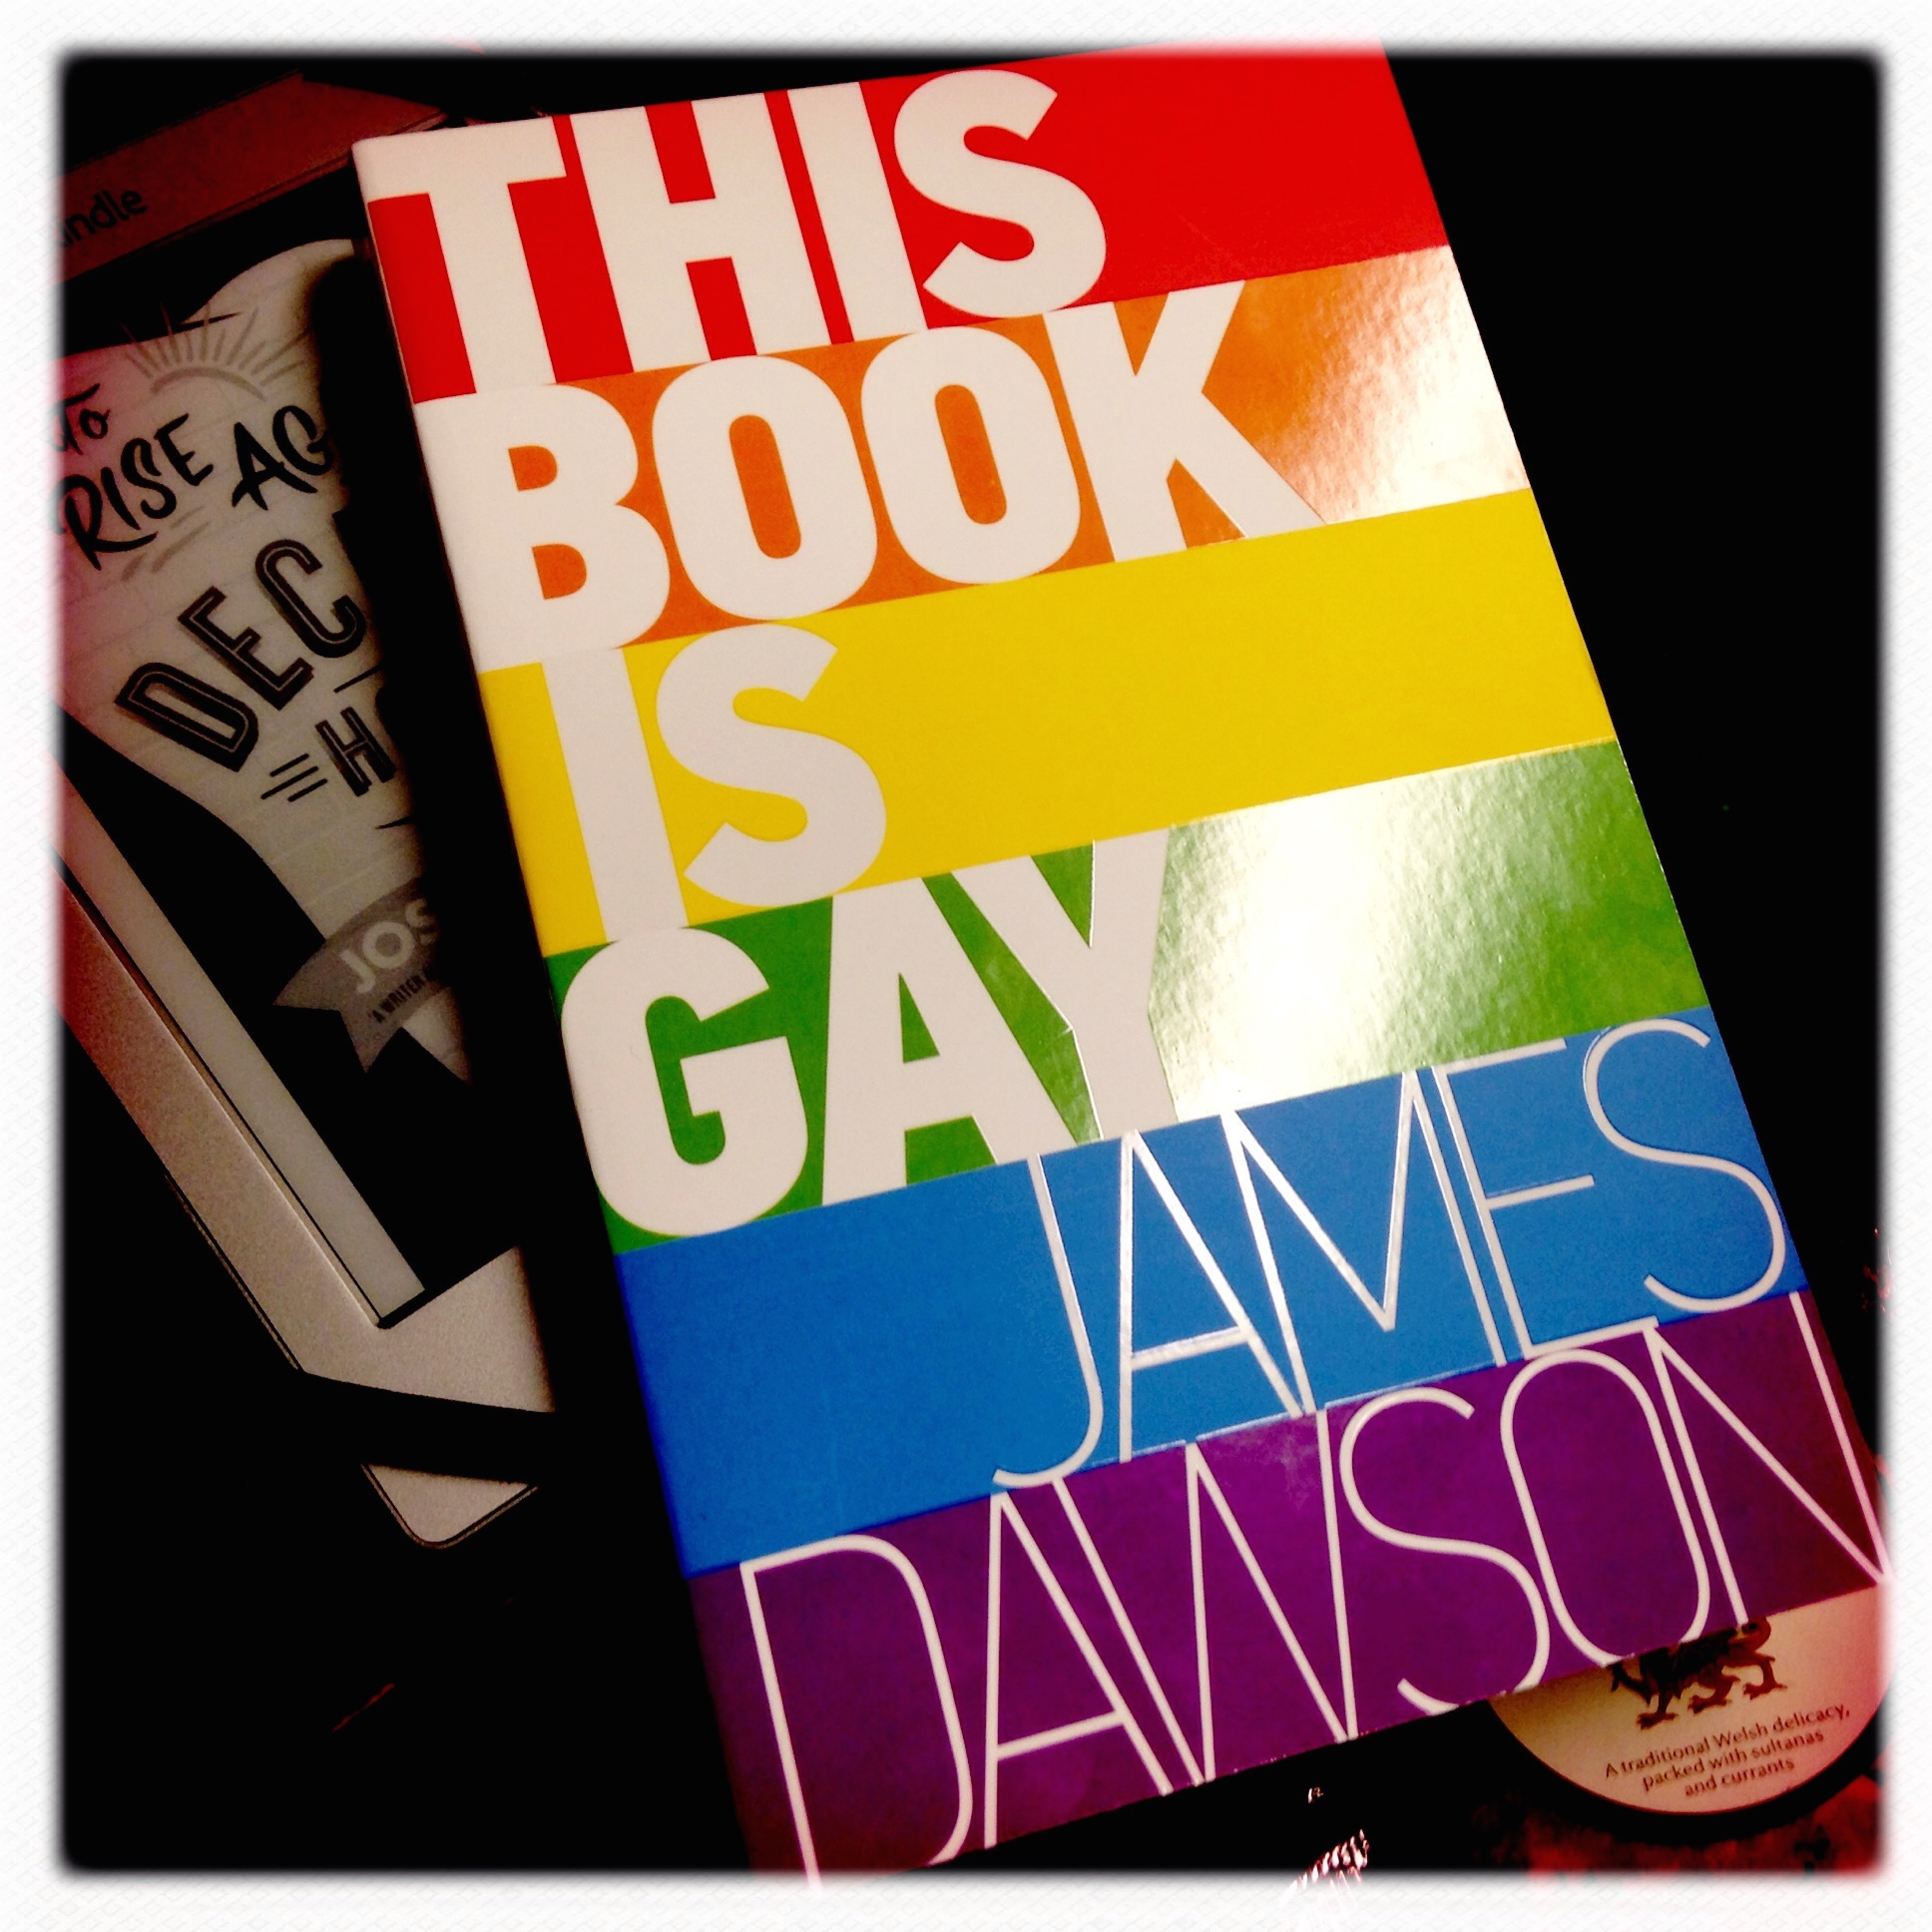 Review: This Book Is Gay by James Dawson